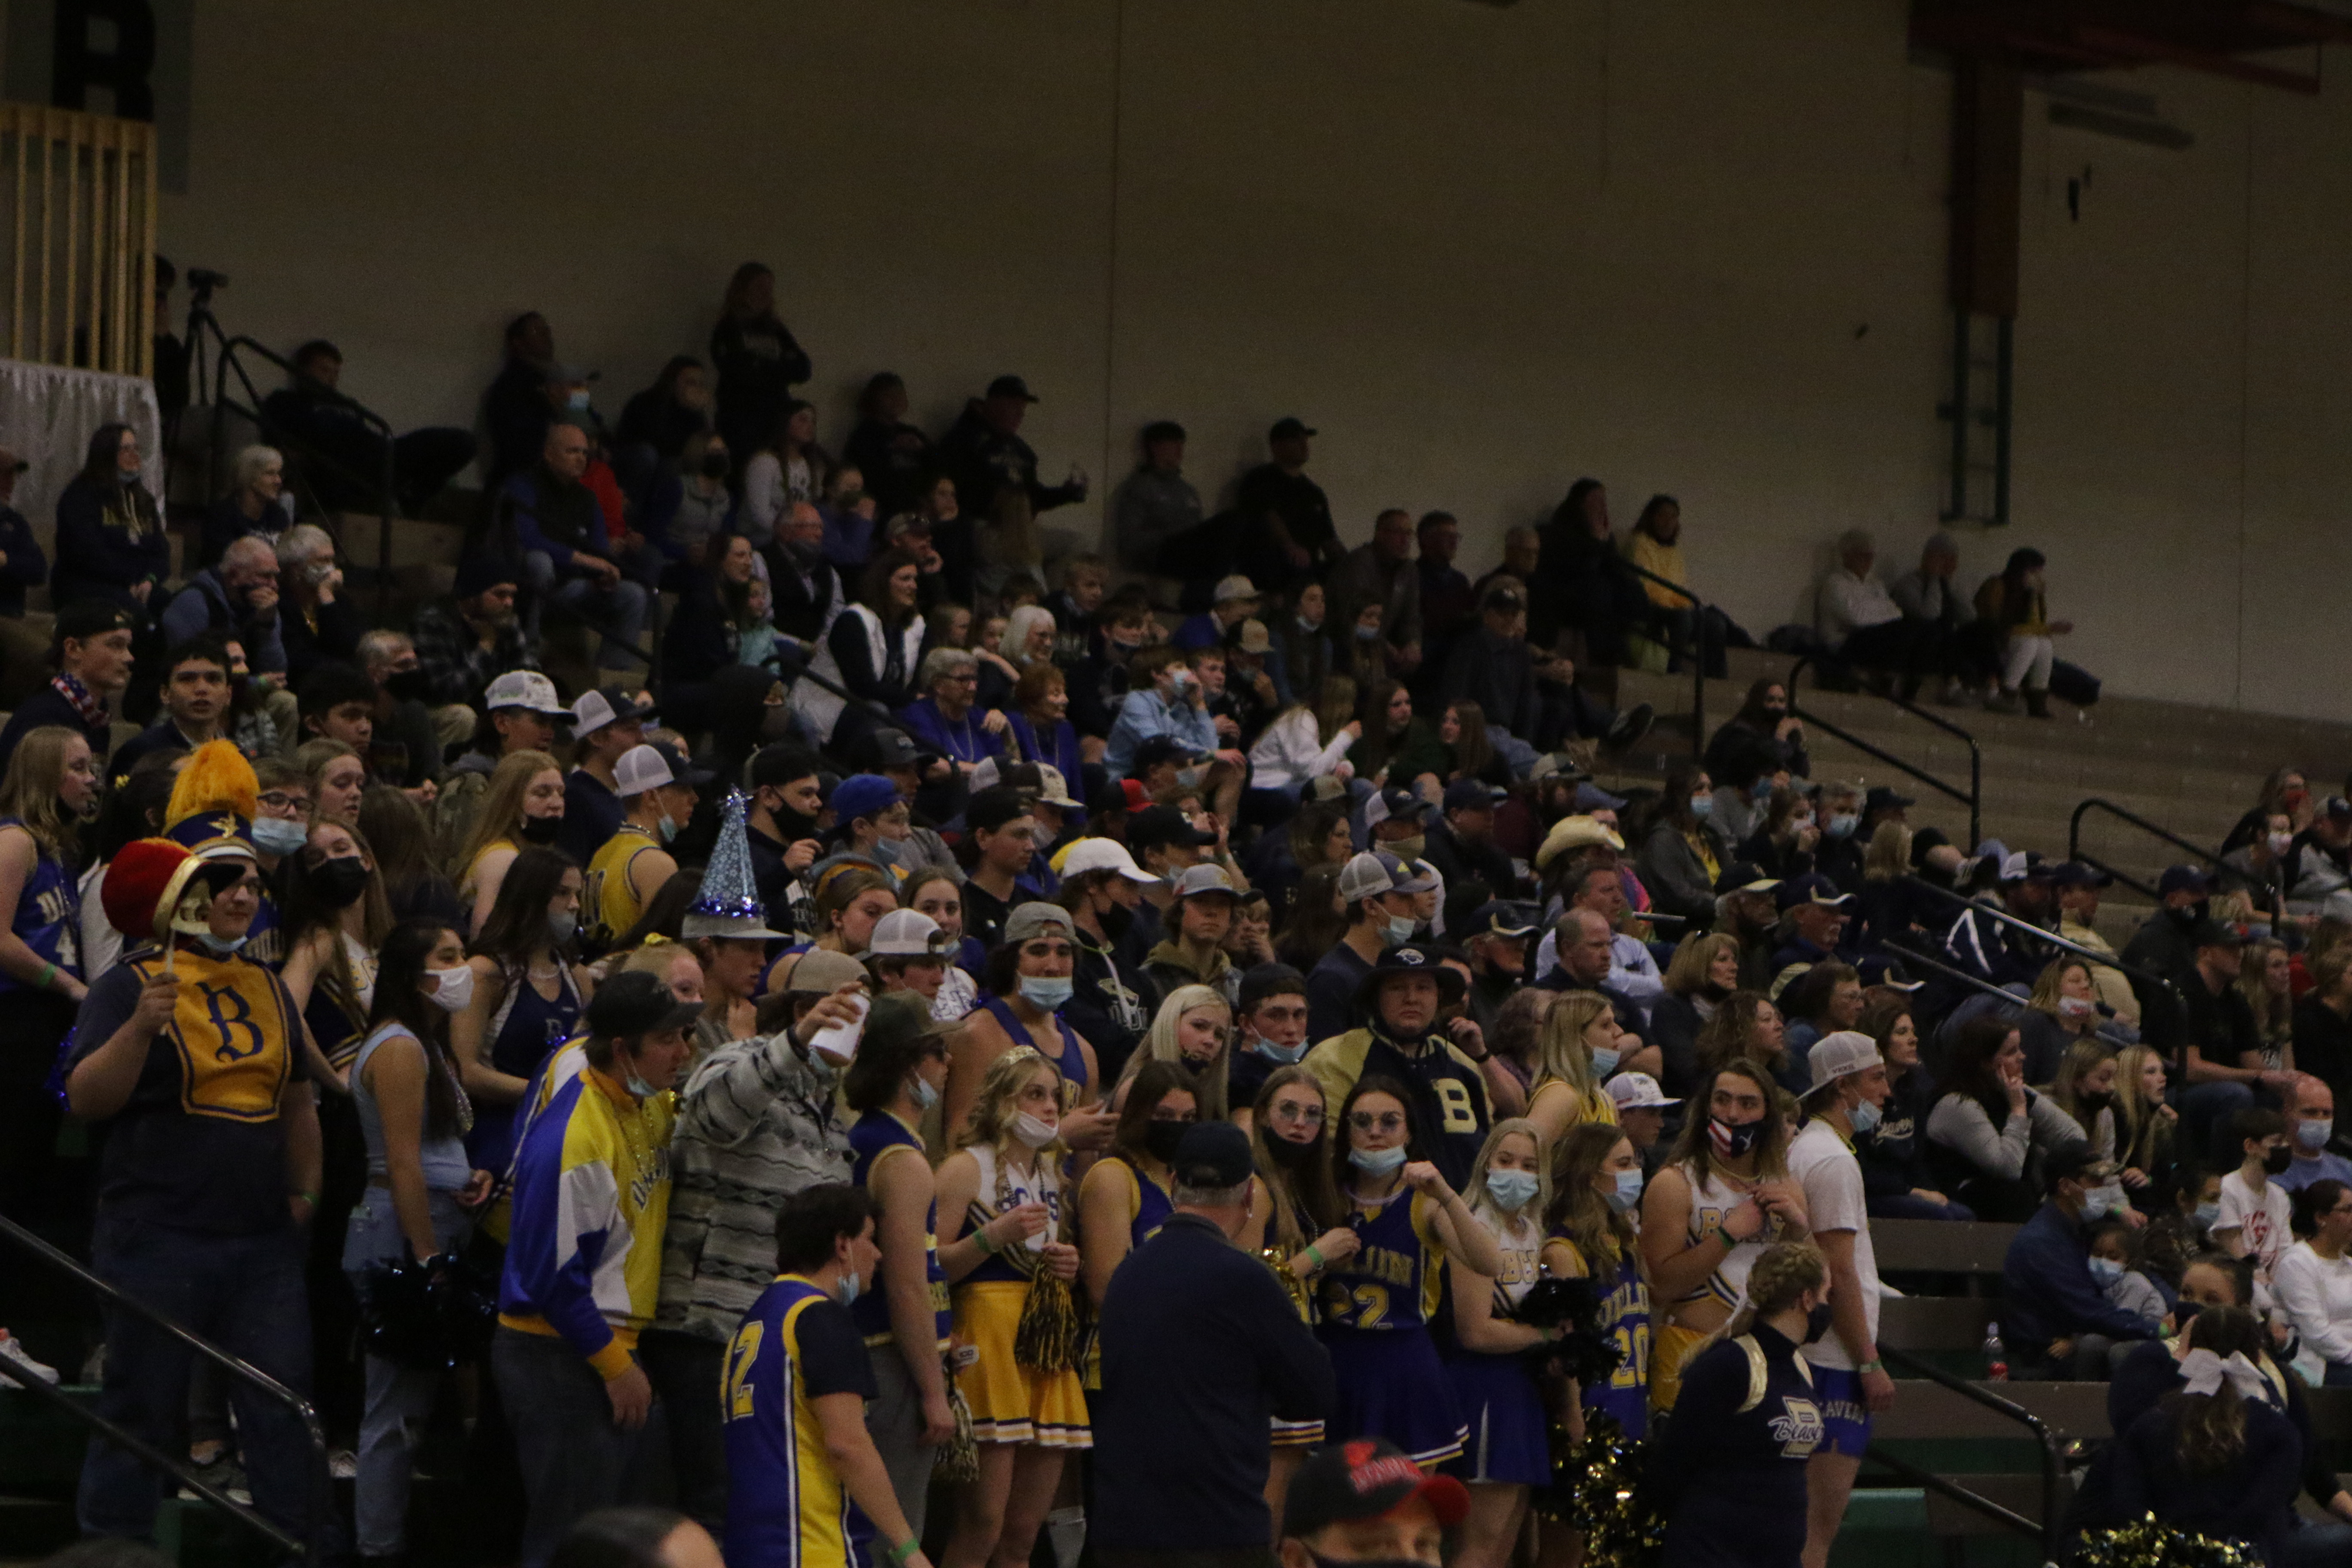 Fans cheer at the Divisional Championship Game